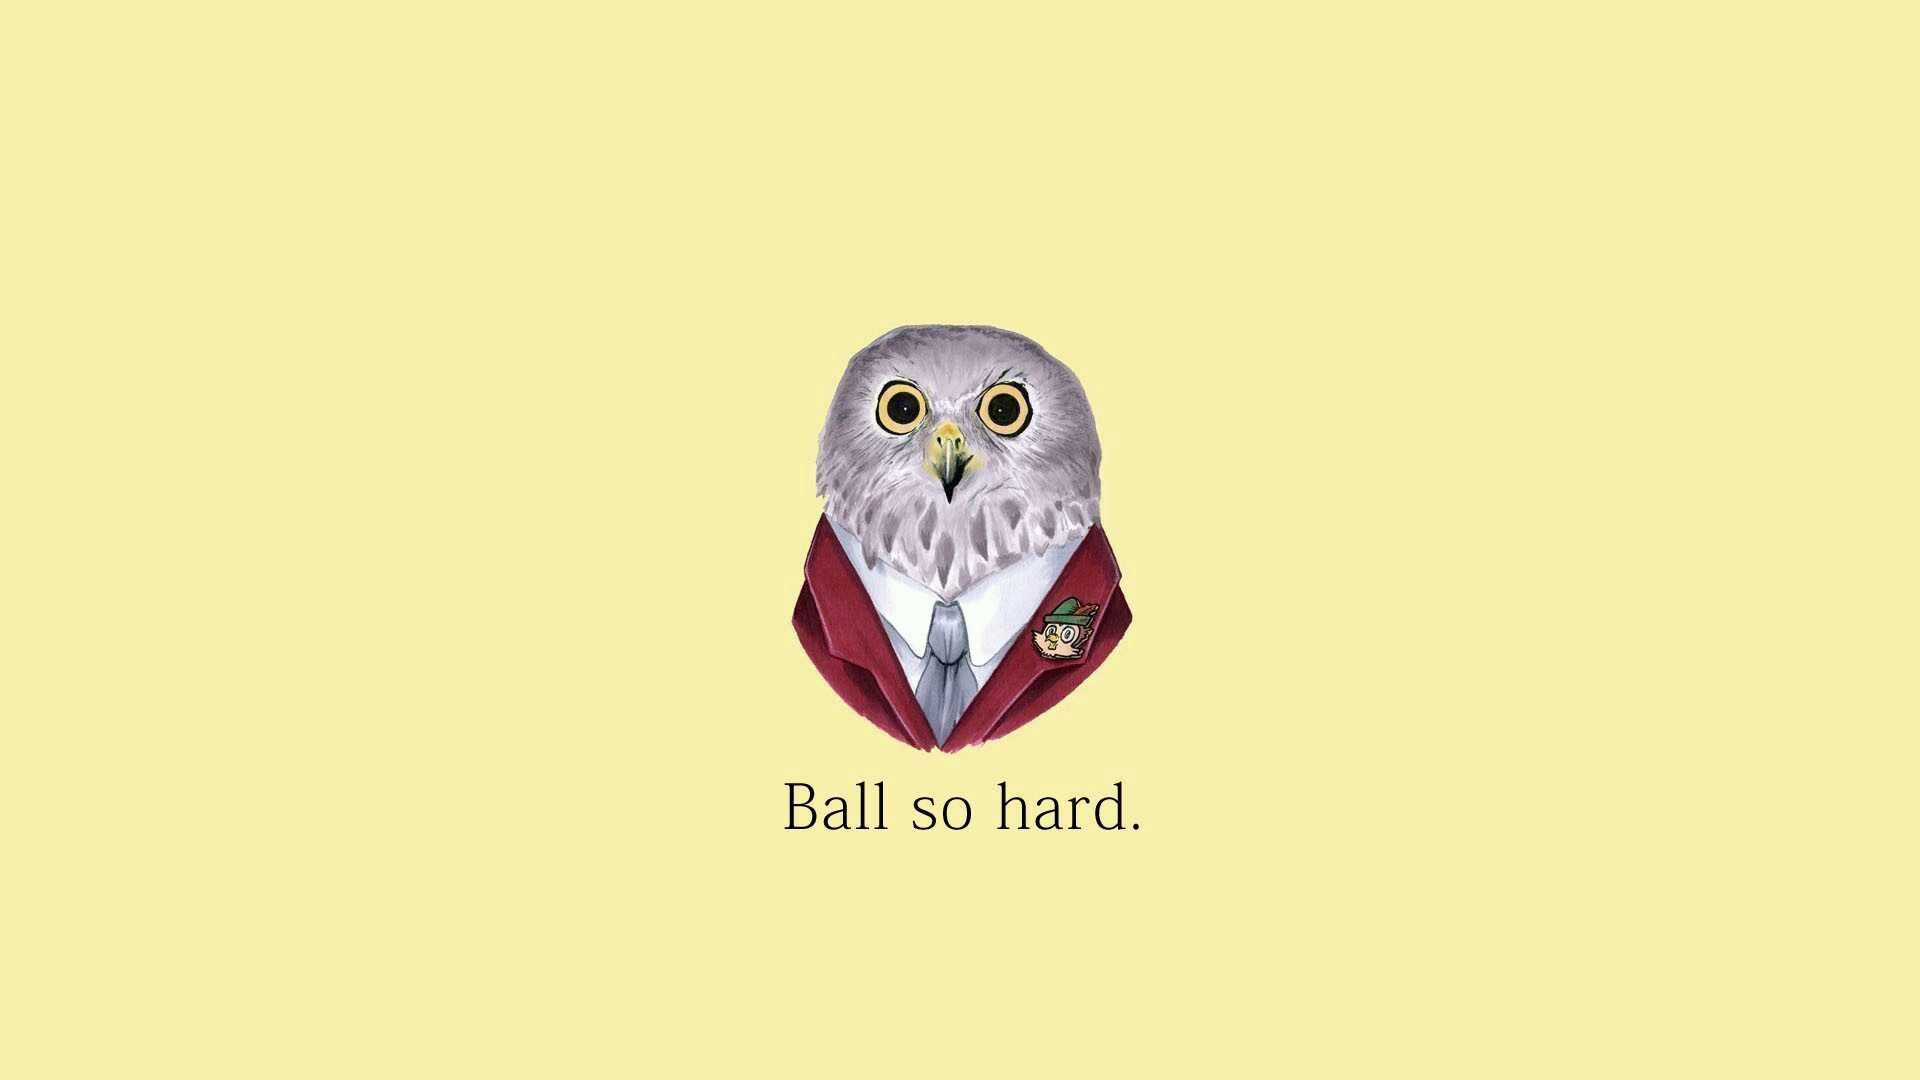 143001 download wallpaper Vector, Owl, Picture, Drawing, Eyes, Background screensavers and pictures for free